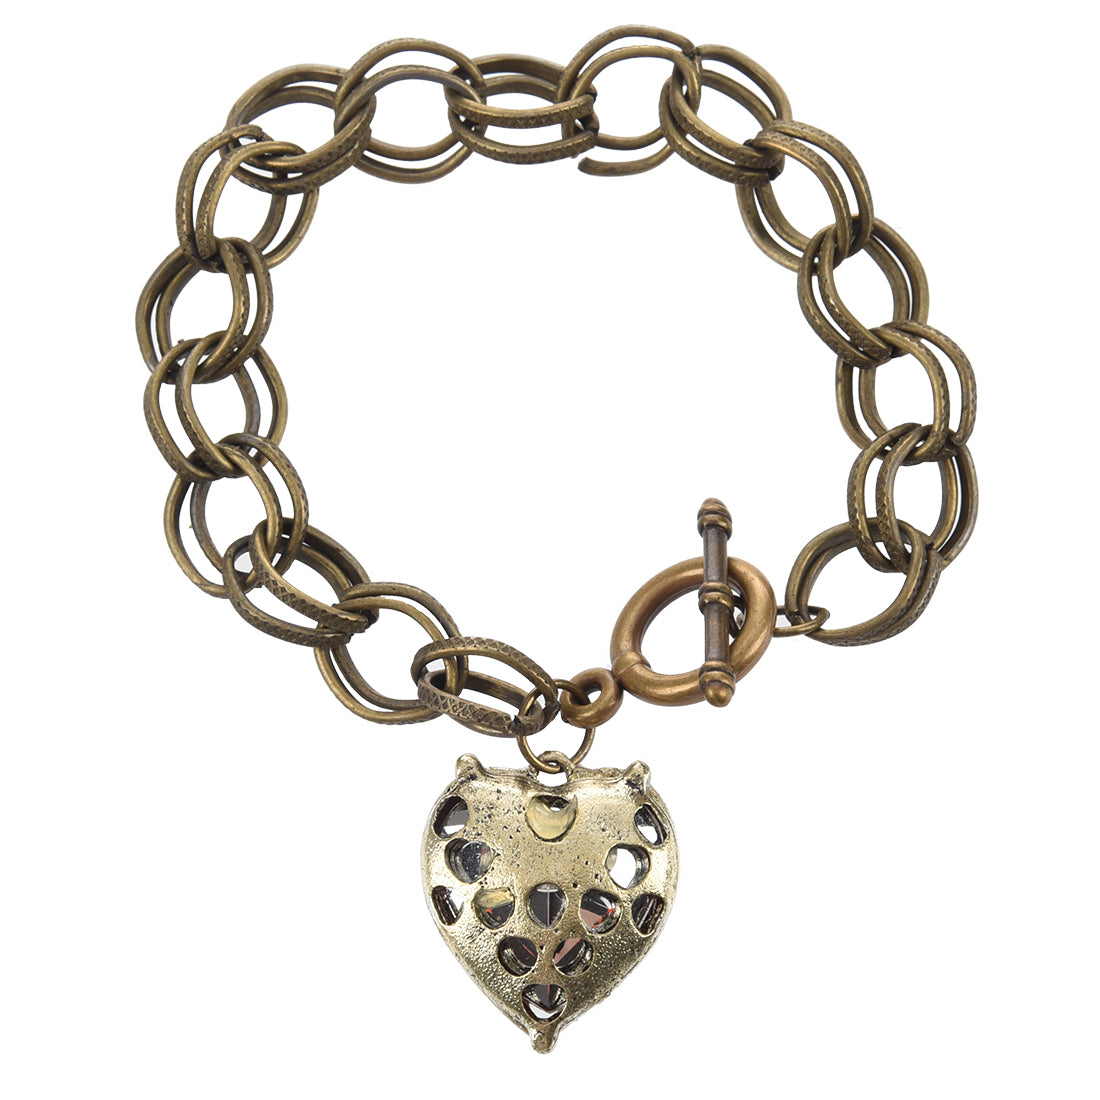 Antique Red Stone Heart Angel Wings Bracelet - 65% OFF - The Creative Booth